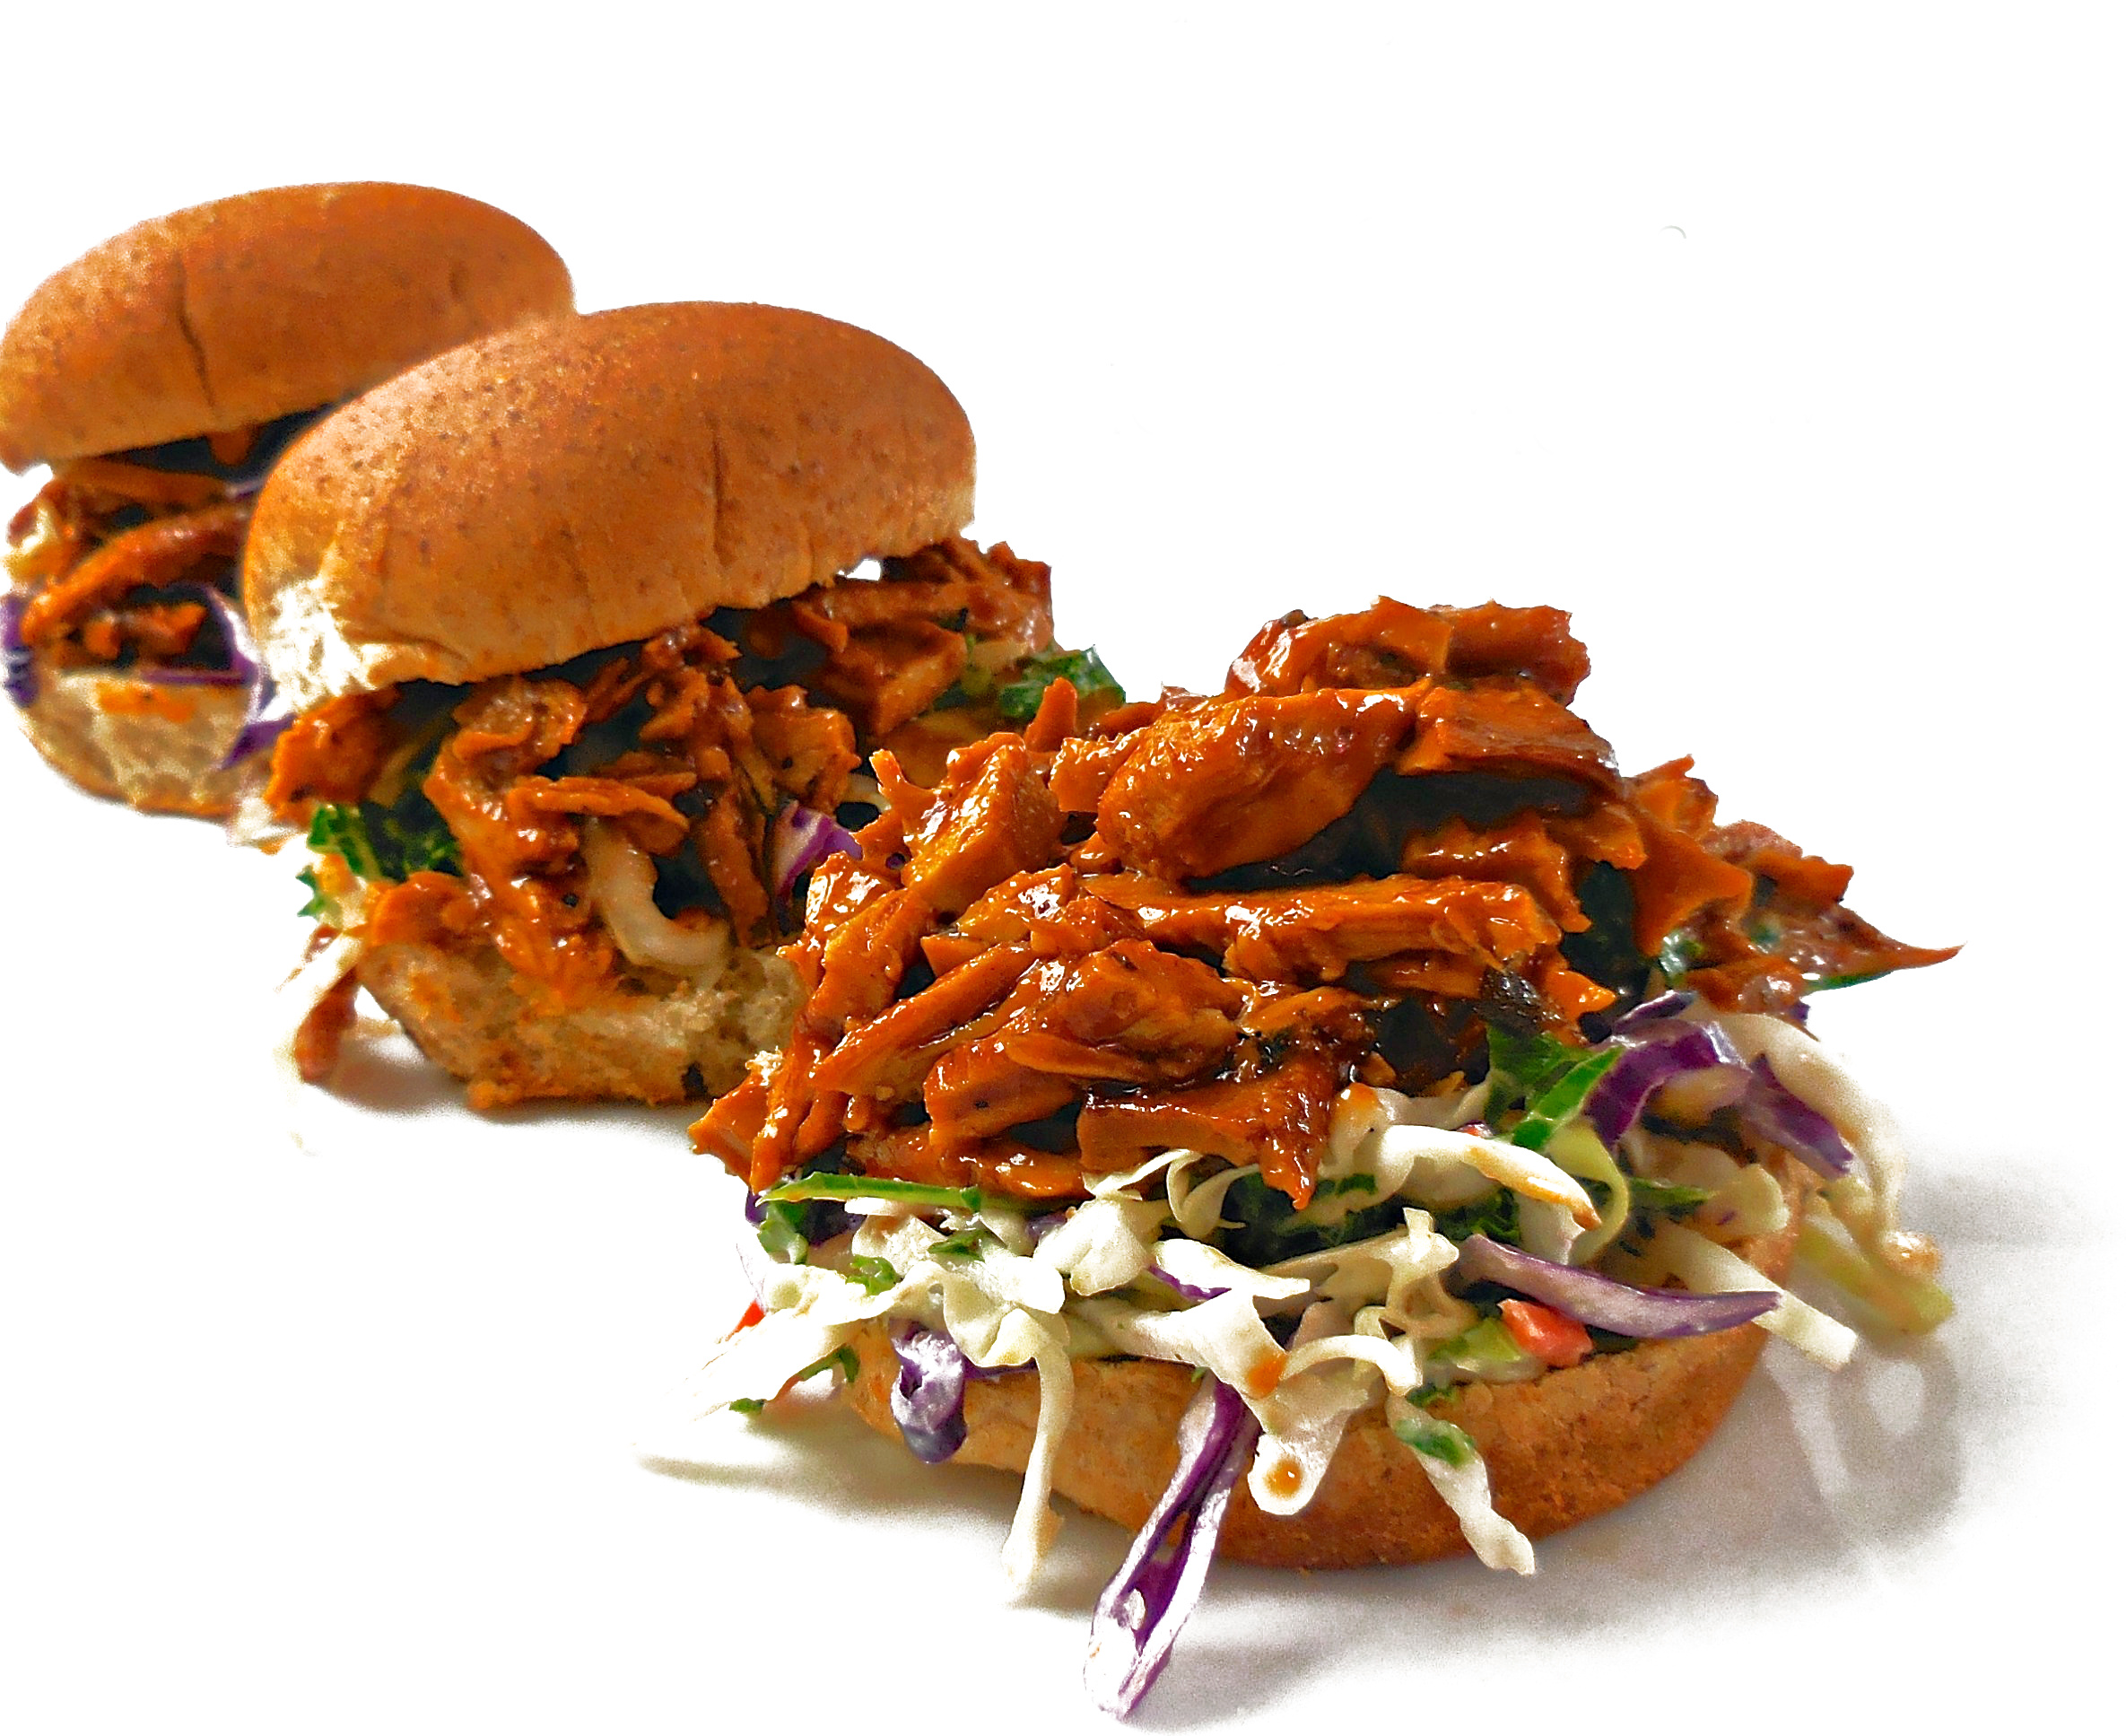 Slow Cooker Vegan BBQ - A classic combination of BBQ and coleslaw together in one bite, these easy sliders are like a taste of summer. via @thiswifecooks